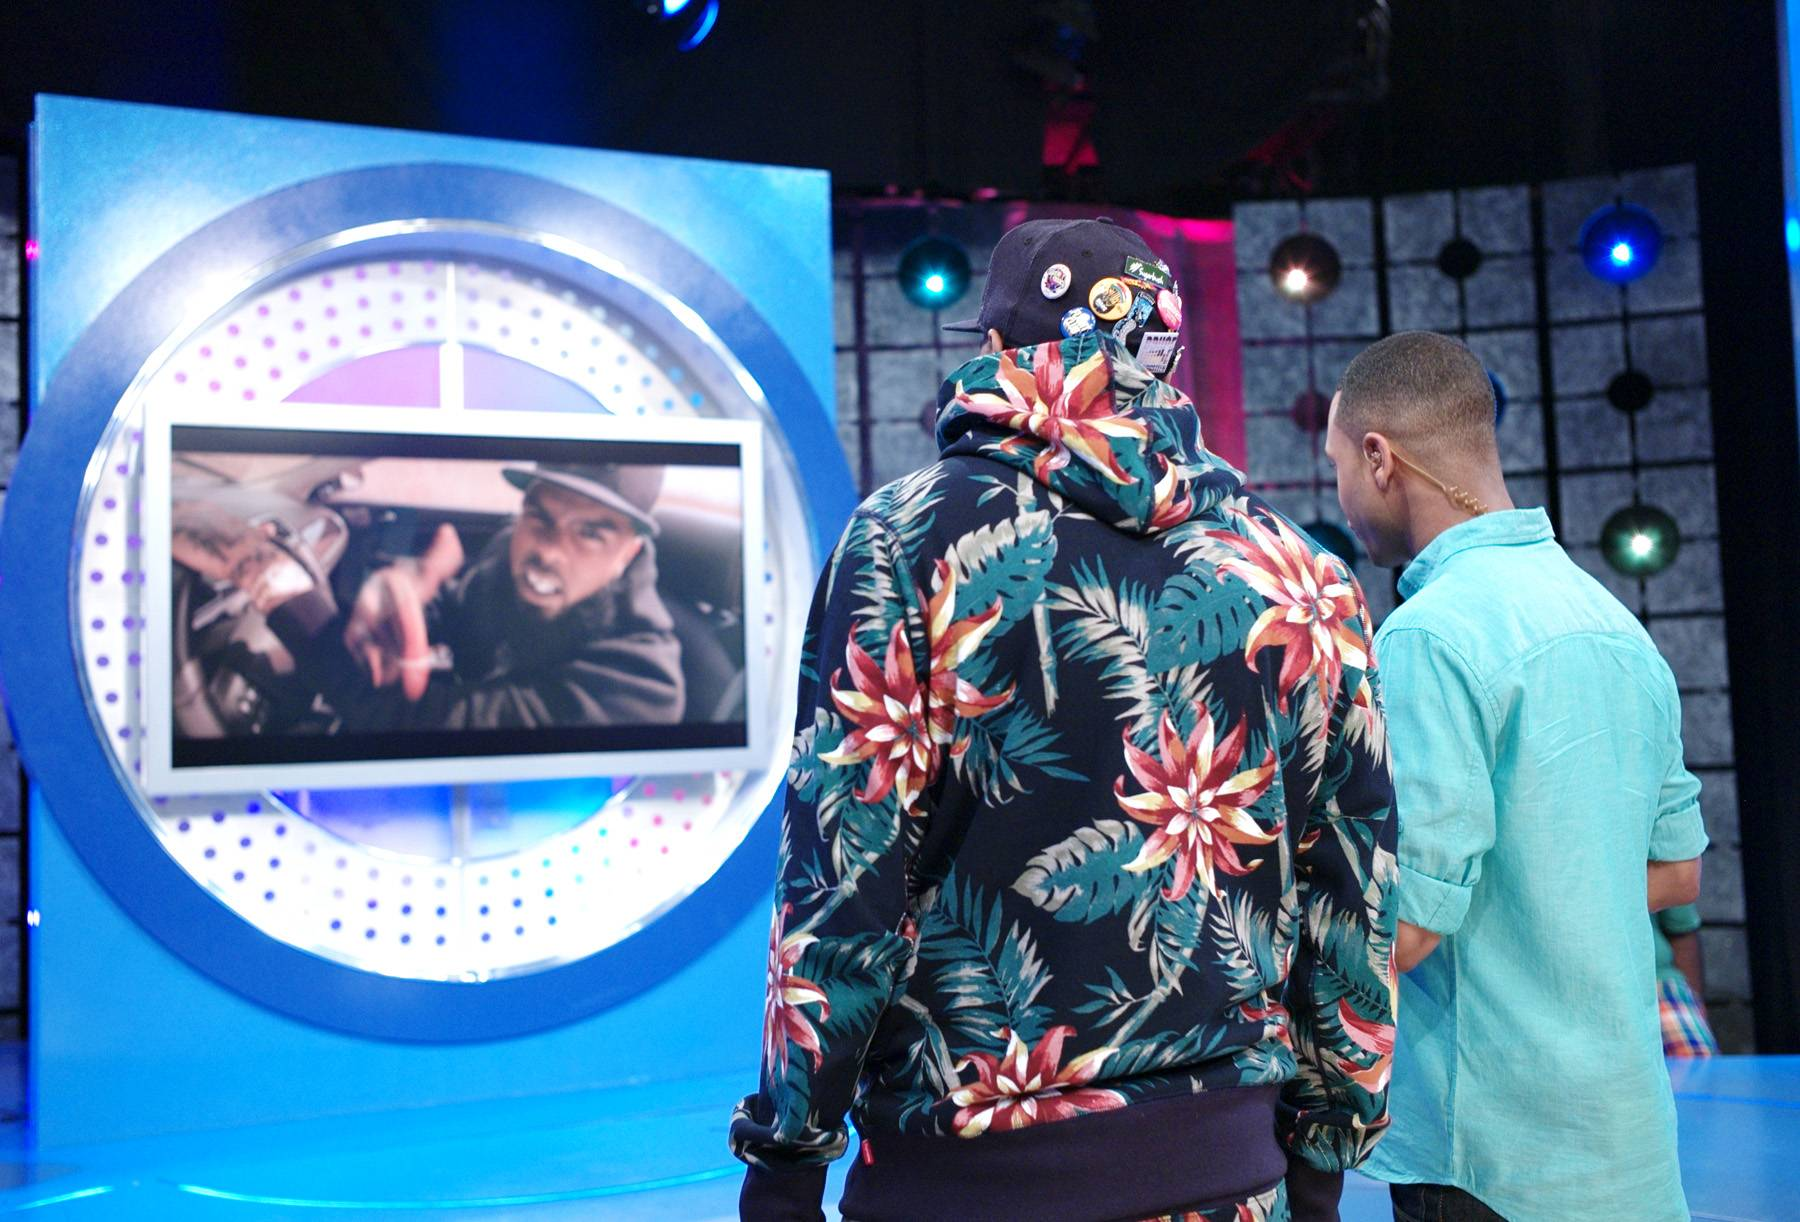 Take a Look - Stalley of MMG with Terrence J at 106 & Park, April 17, 2012. (Photo: John Ricard/BET)